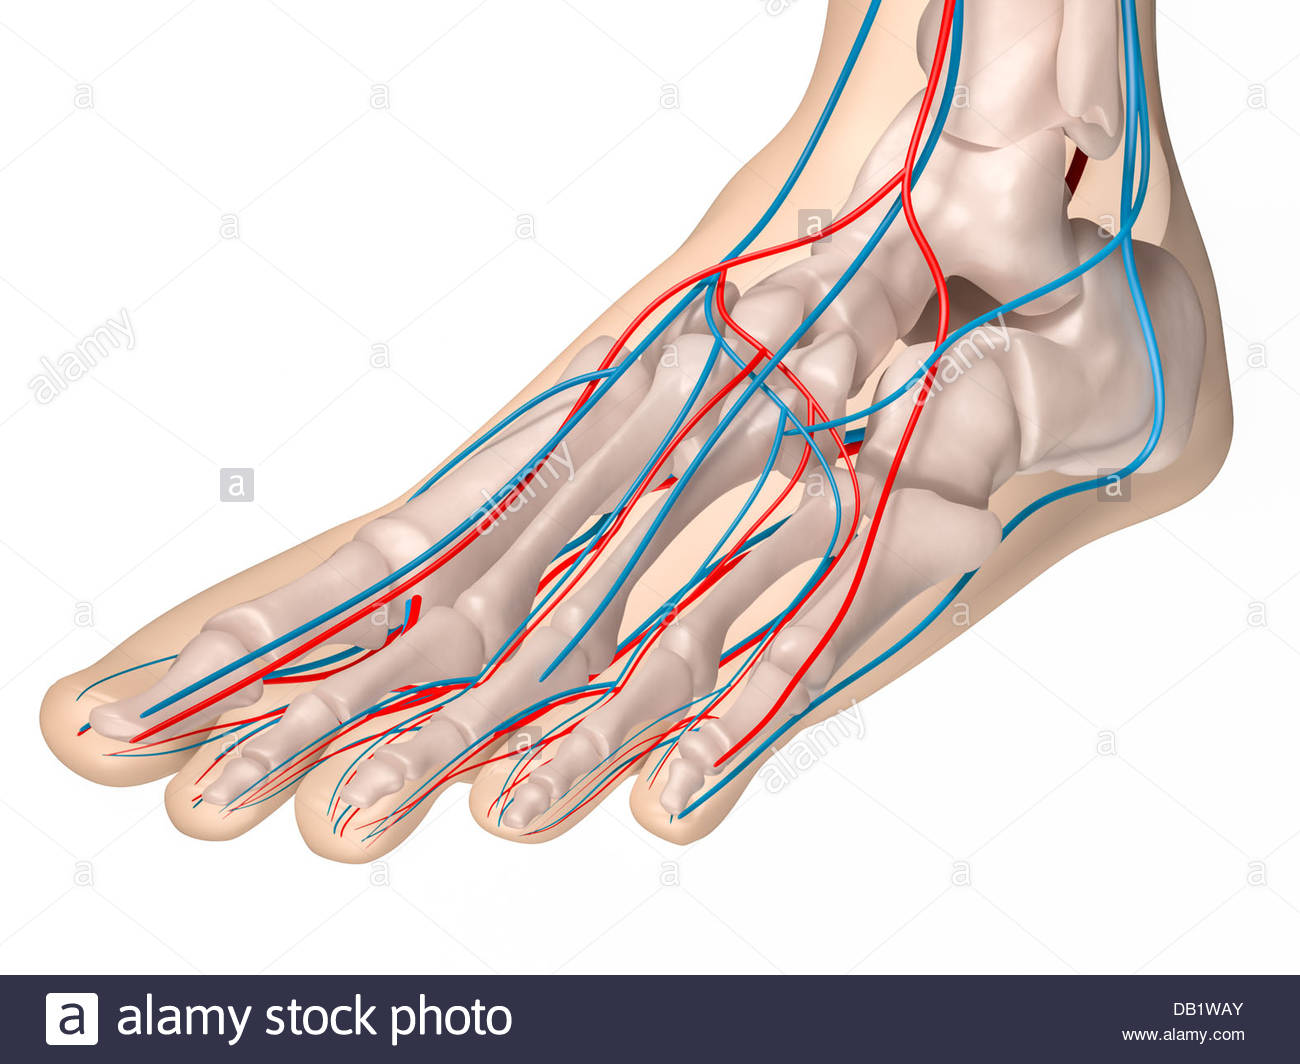 Human feet anatomy 4234409 - follow4more.info